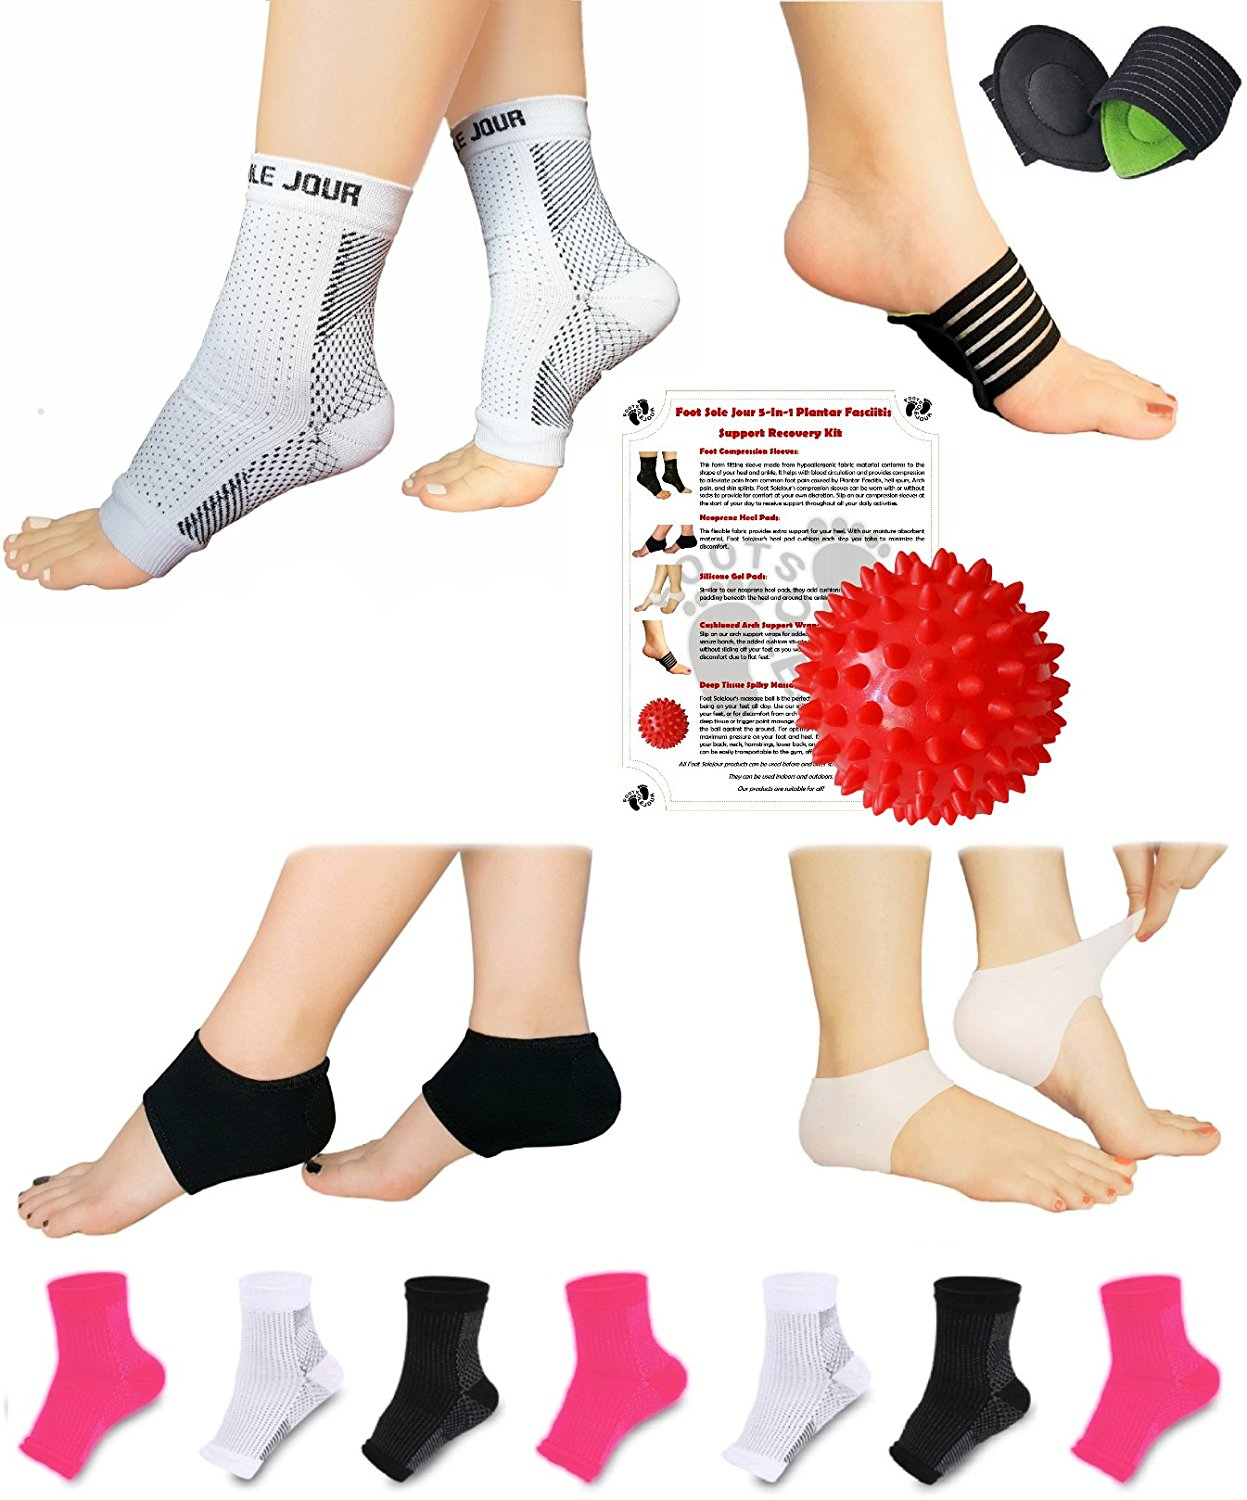 32d87677c7 FOOT SOLE JOUR NEW Plantar Fasciitis Pain Relief Recovery Kit - Foot  Compression Sleeve, Heel